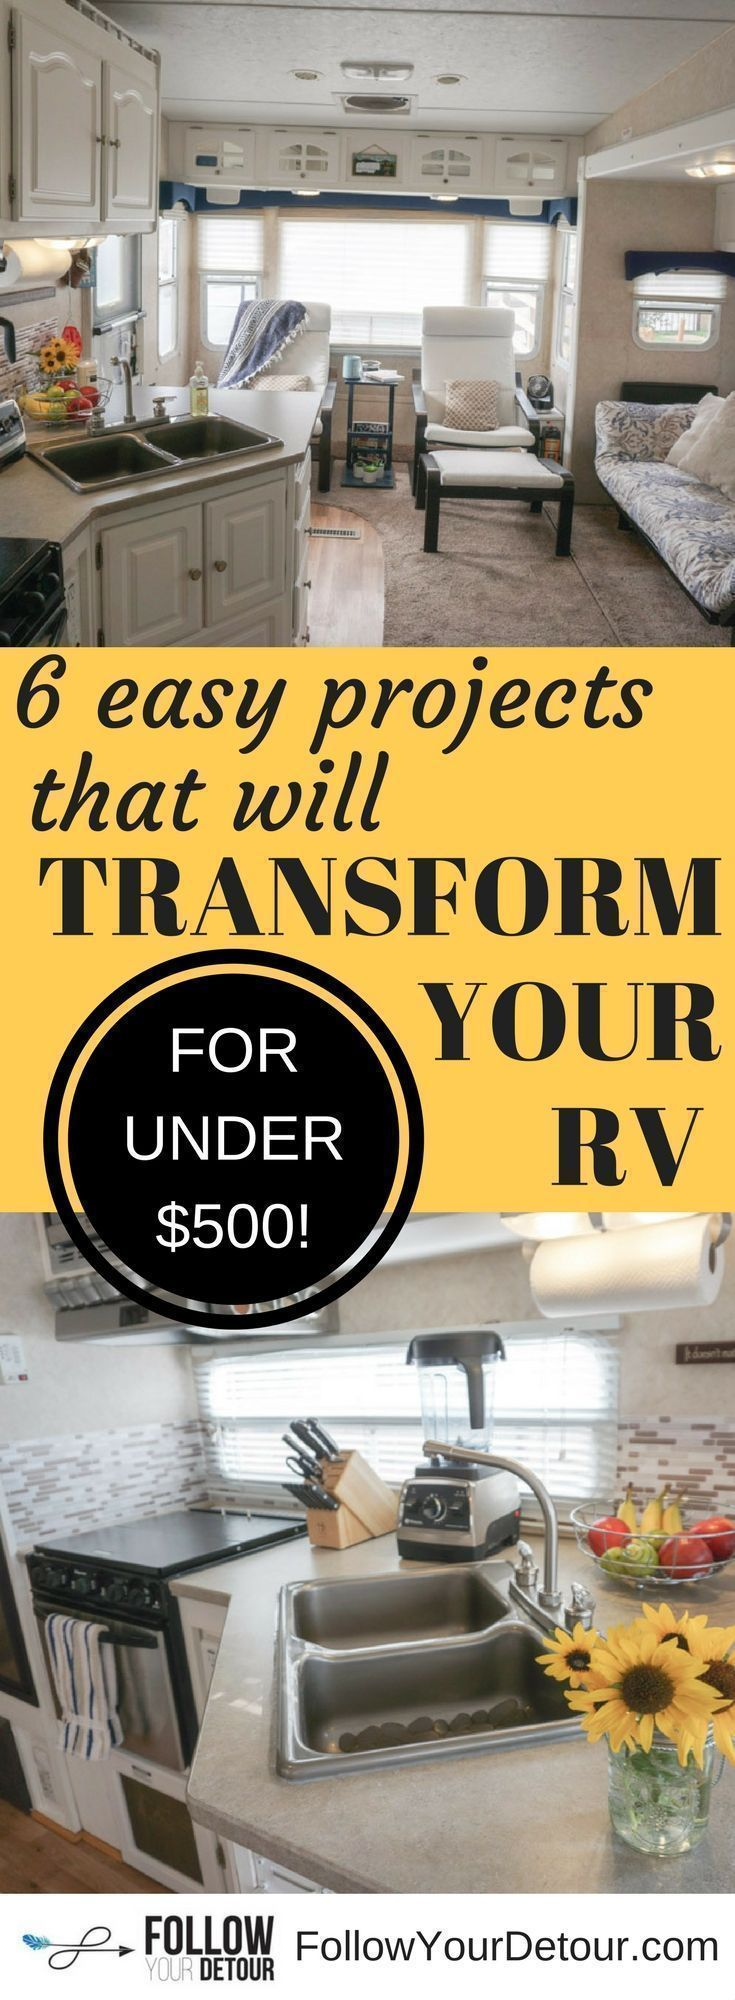 6 Quick & Easy Remodel Projects That Transformed Our RV Into a Home! - Follow Your Detour #rvliving